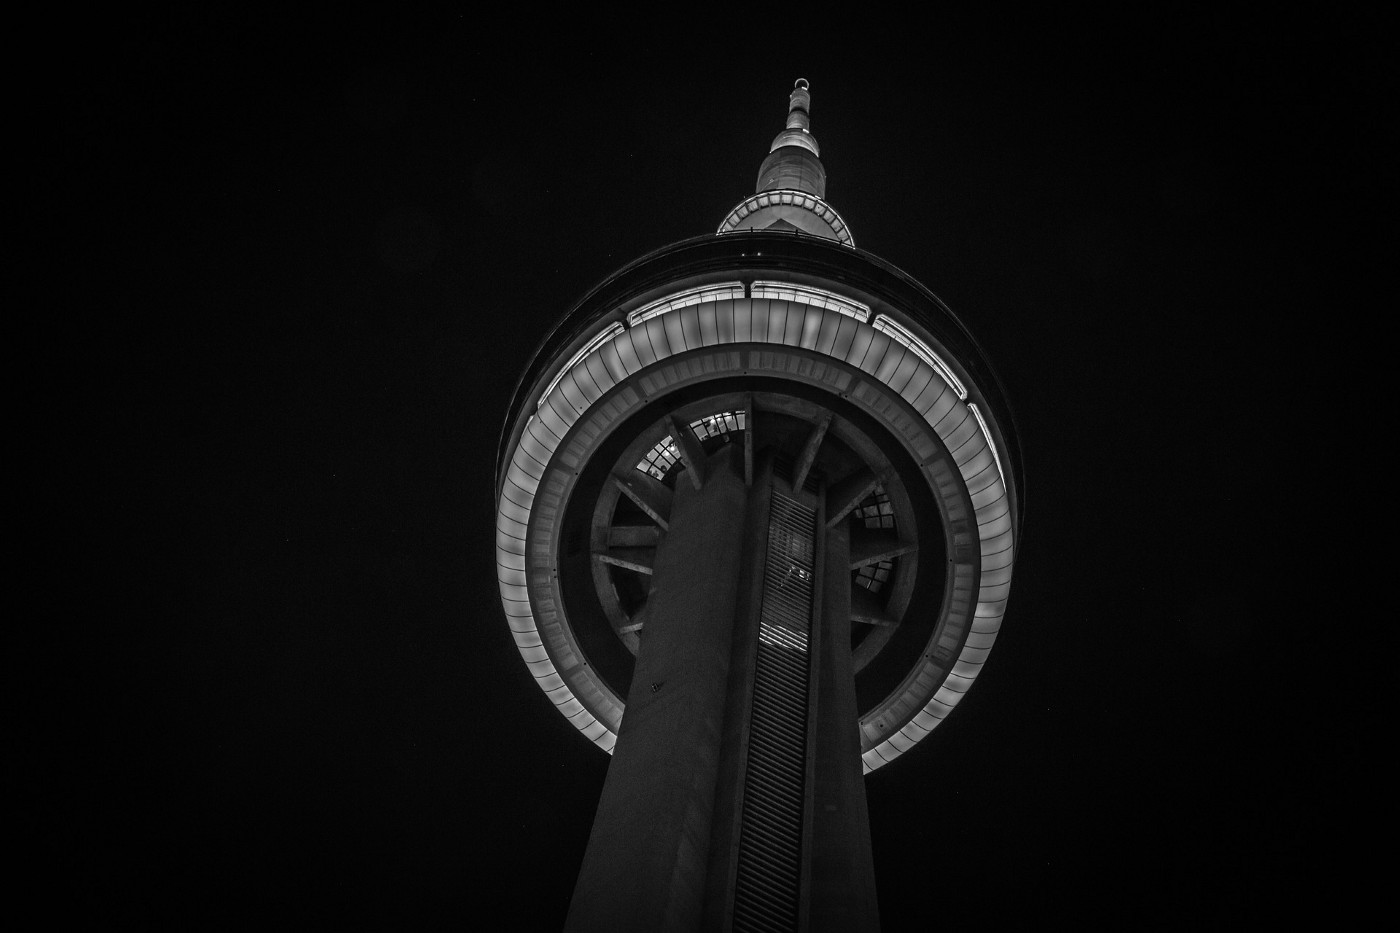 Image of CN Tower in Toronto, Canada.